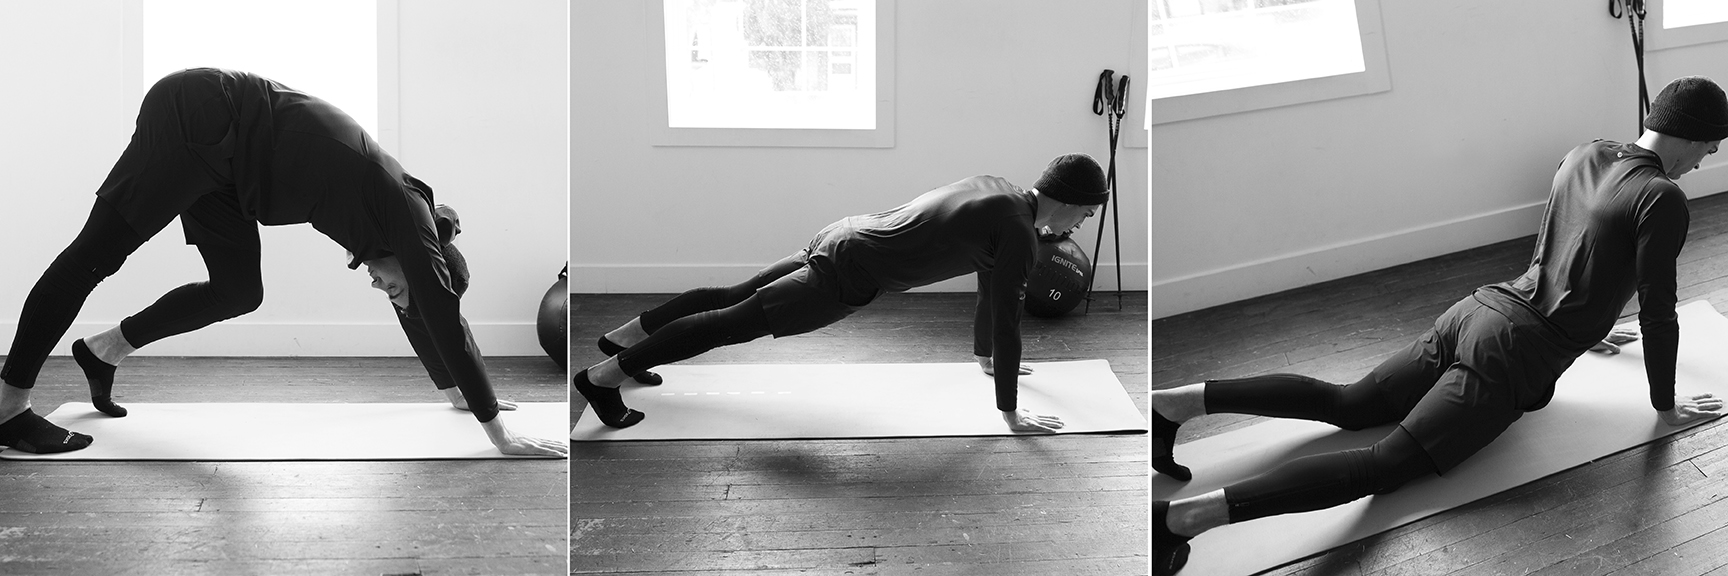 START IN DOWNWARD DOG. SLOWLY MOVE INTO A PLANK, BRACING THE ABDOMINALS. HOLD THE POSITION FOR ABOUT 5 SEC. SLOWLY DROP HIPS INTO THE GROUND. RETURN TO YOUR PLANK BEFORE MOVING TO DOWNWARD FACING DOG. 10 REPS